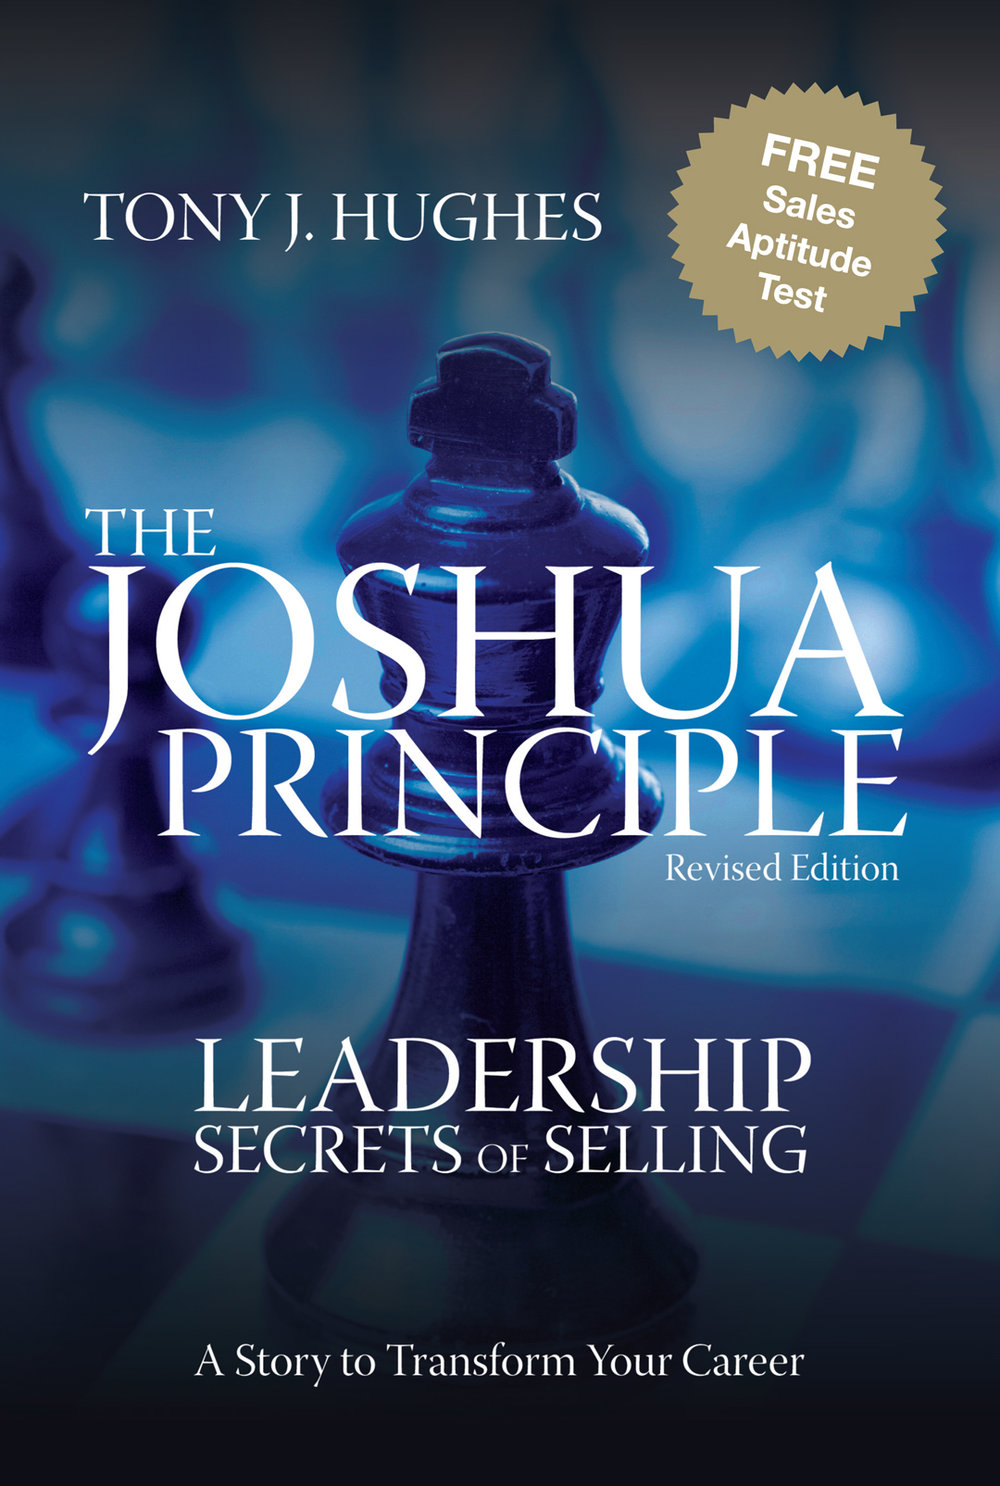 The Joshua Principle book.jpg